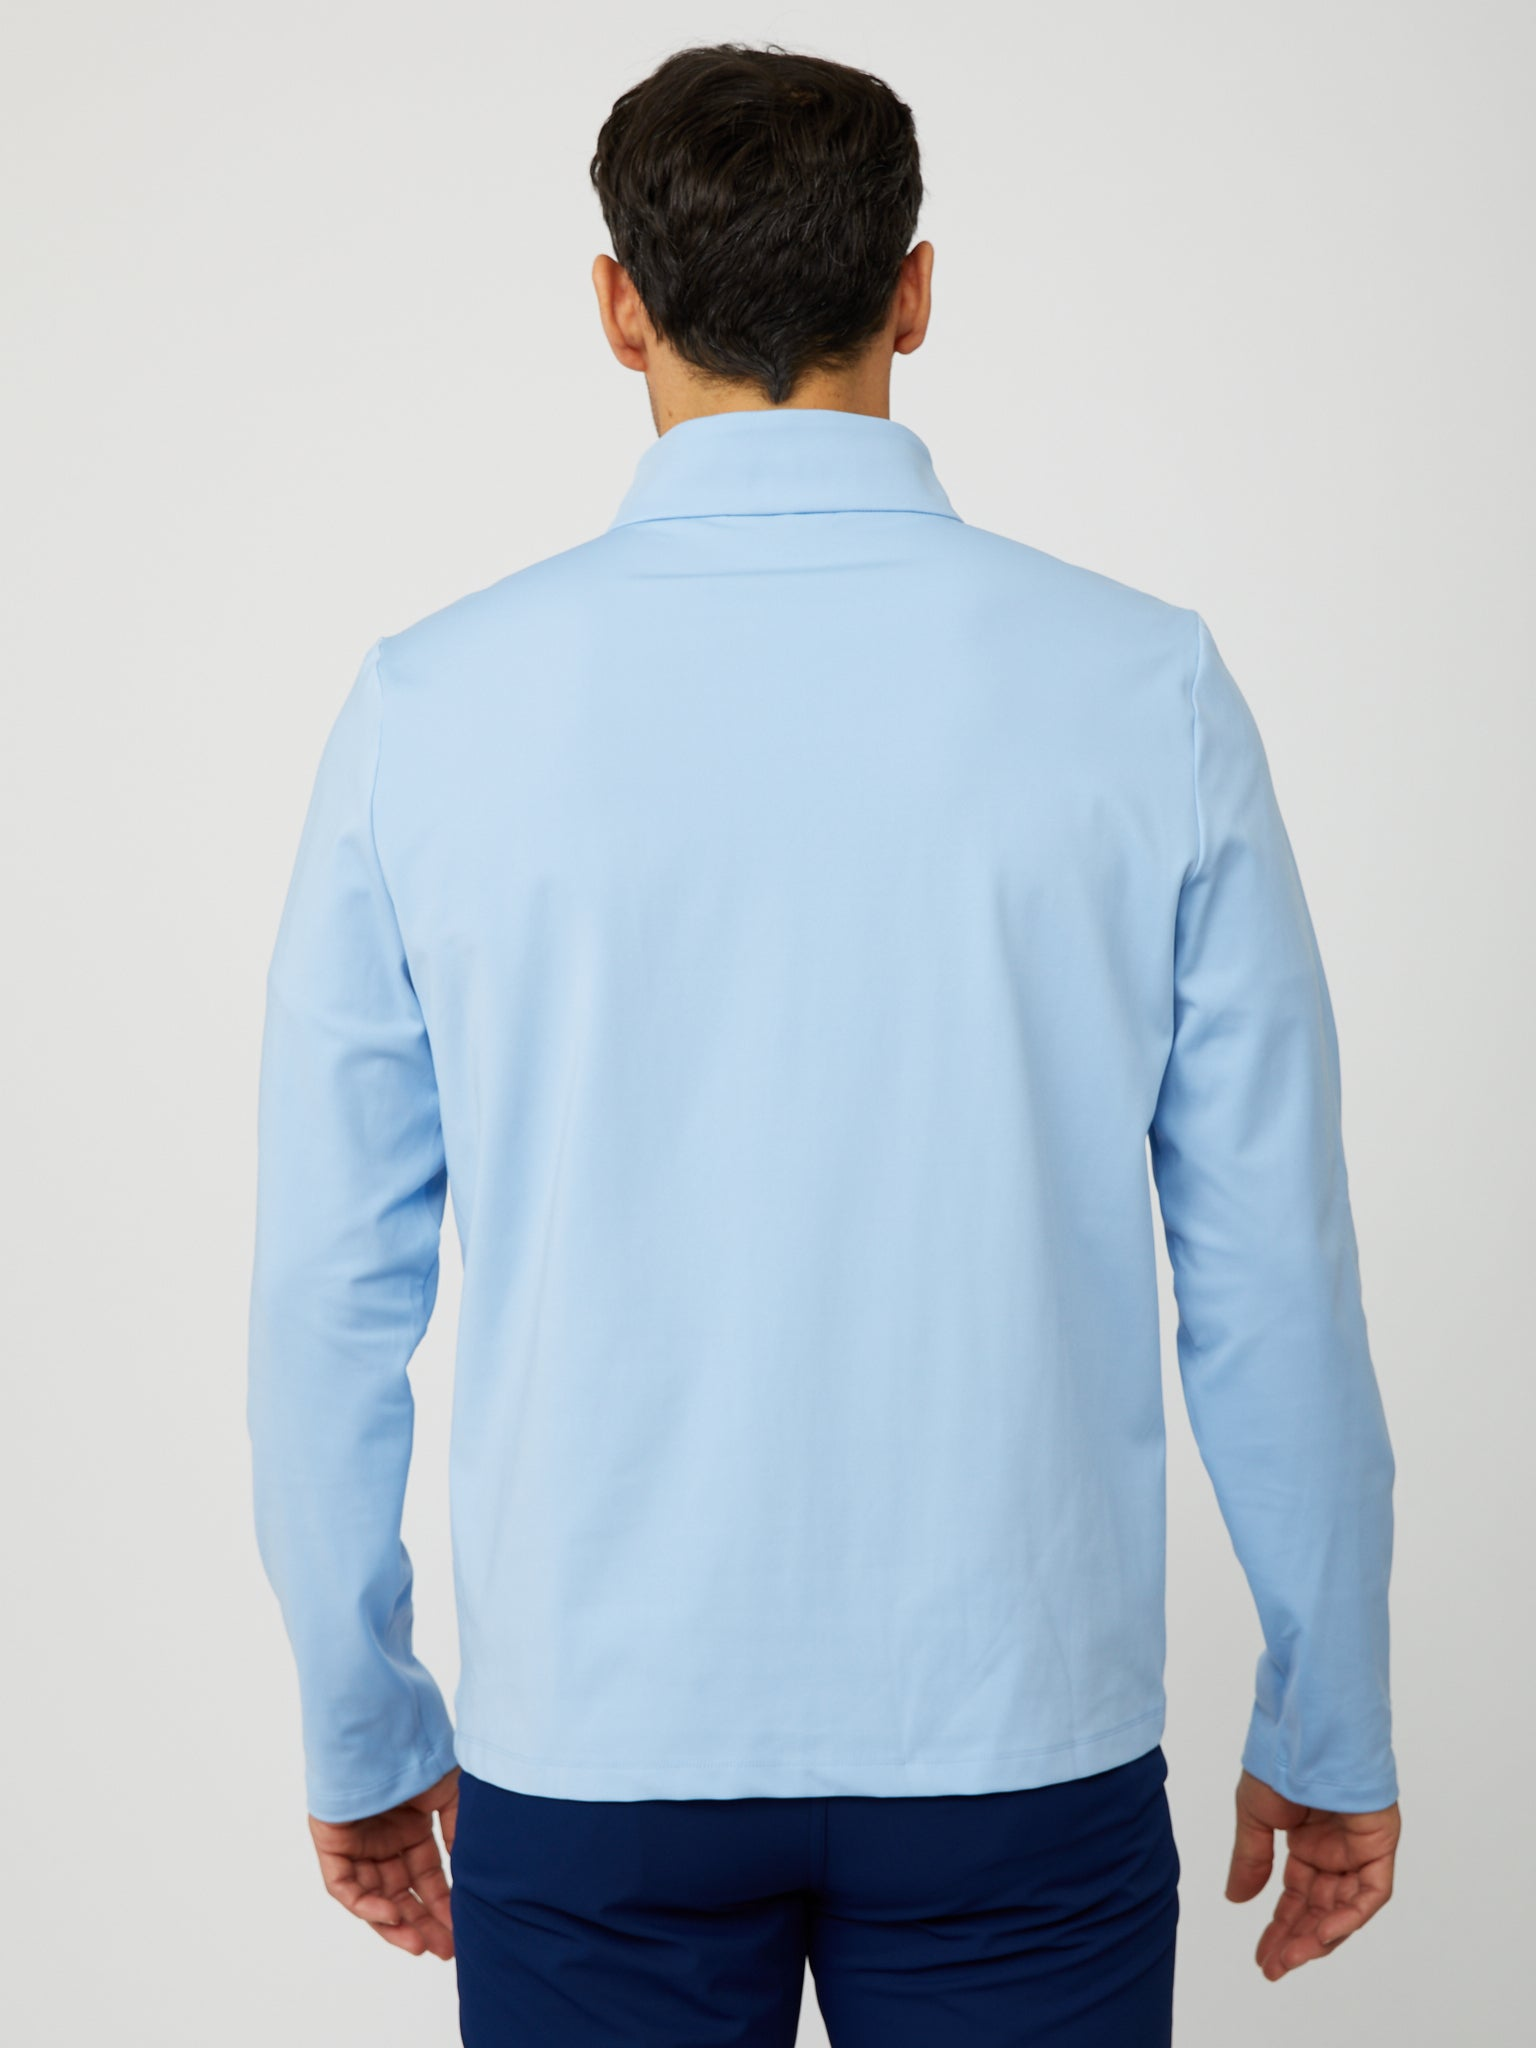 Costa Quarter Zip in Placid Blue